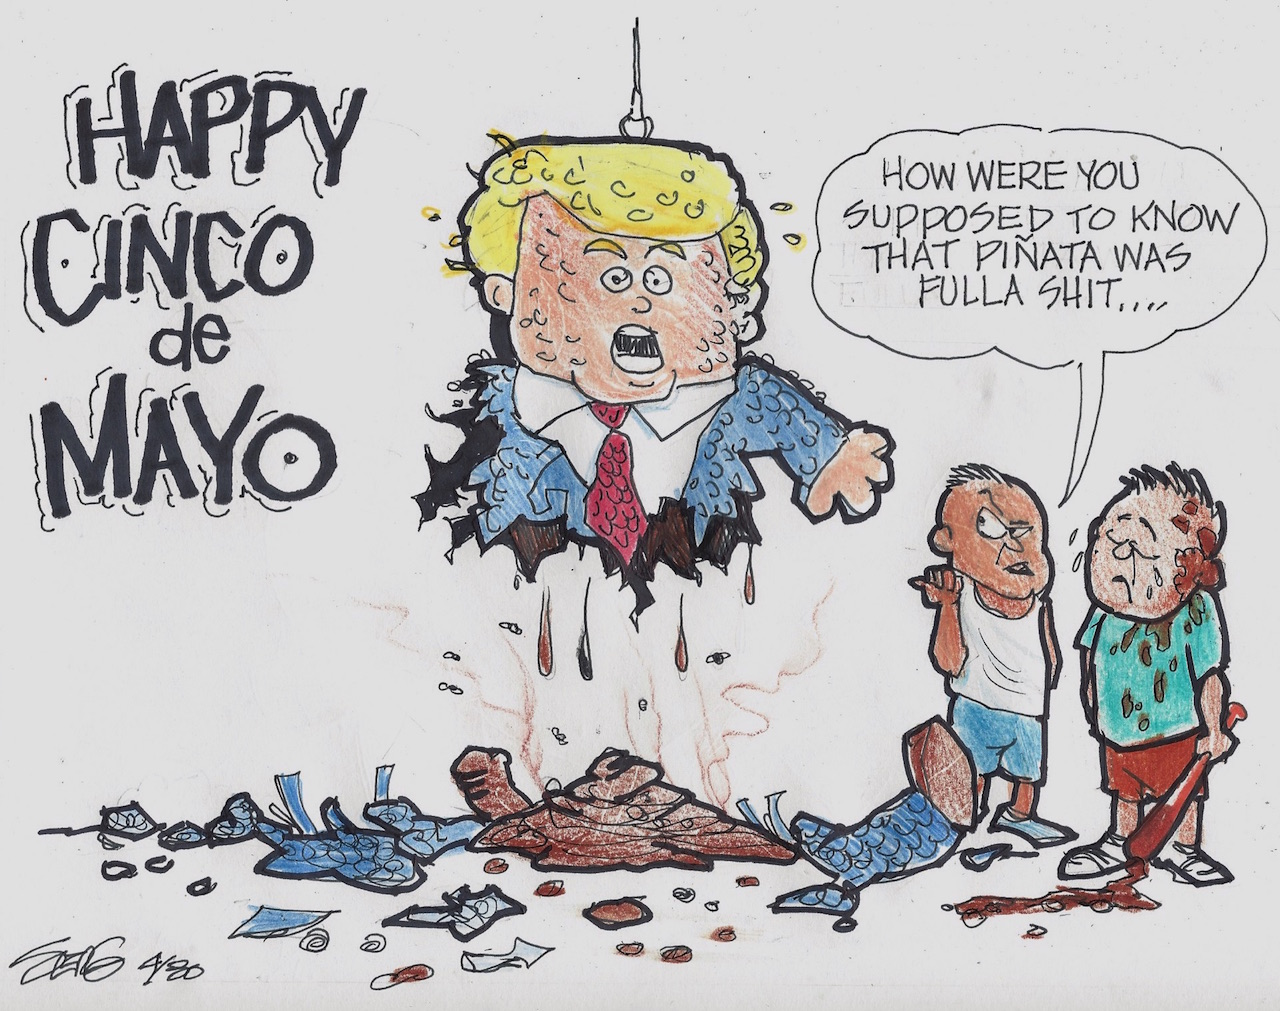 by SERG HERNANDEZ on May 5, 2016 in Cartoons , El Now